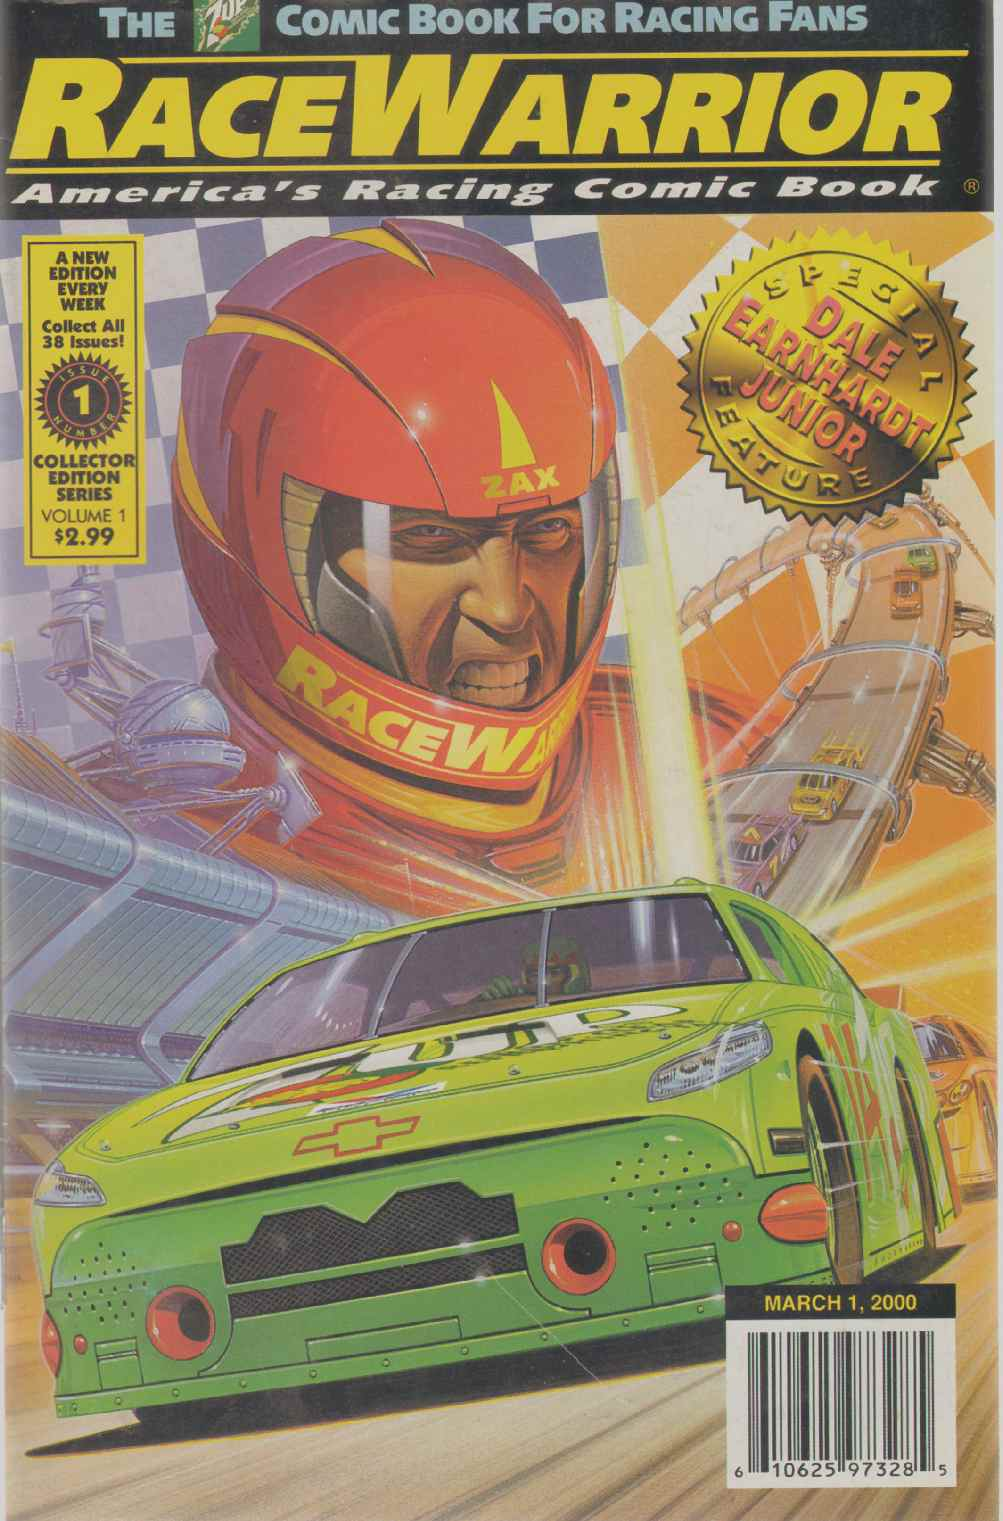 RACEWARRIOR America's Racing Comic Book Issue 1, Collins, Terry